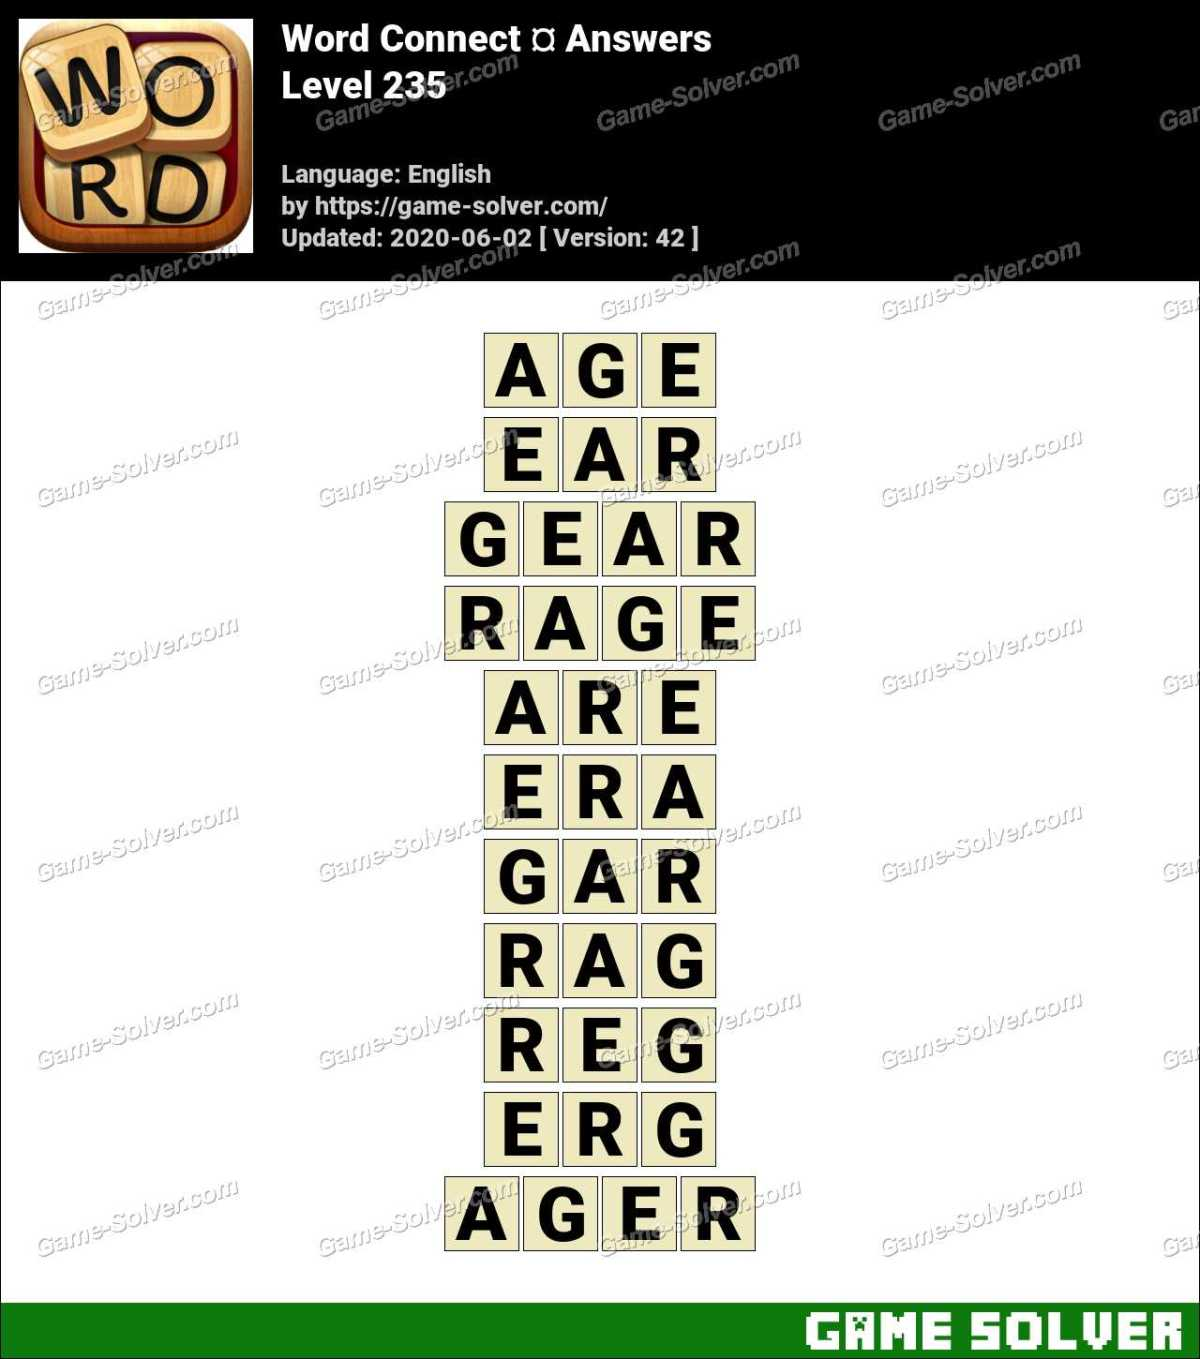 Word Connect Level 235 Answers